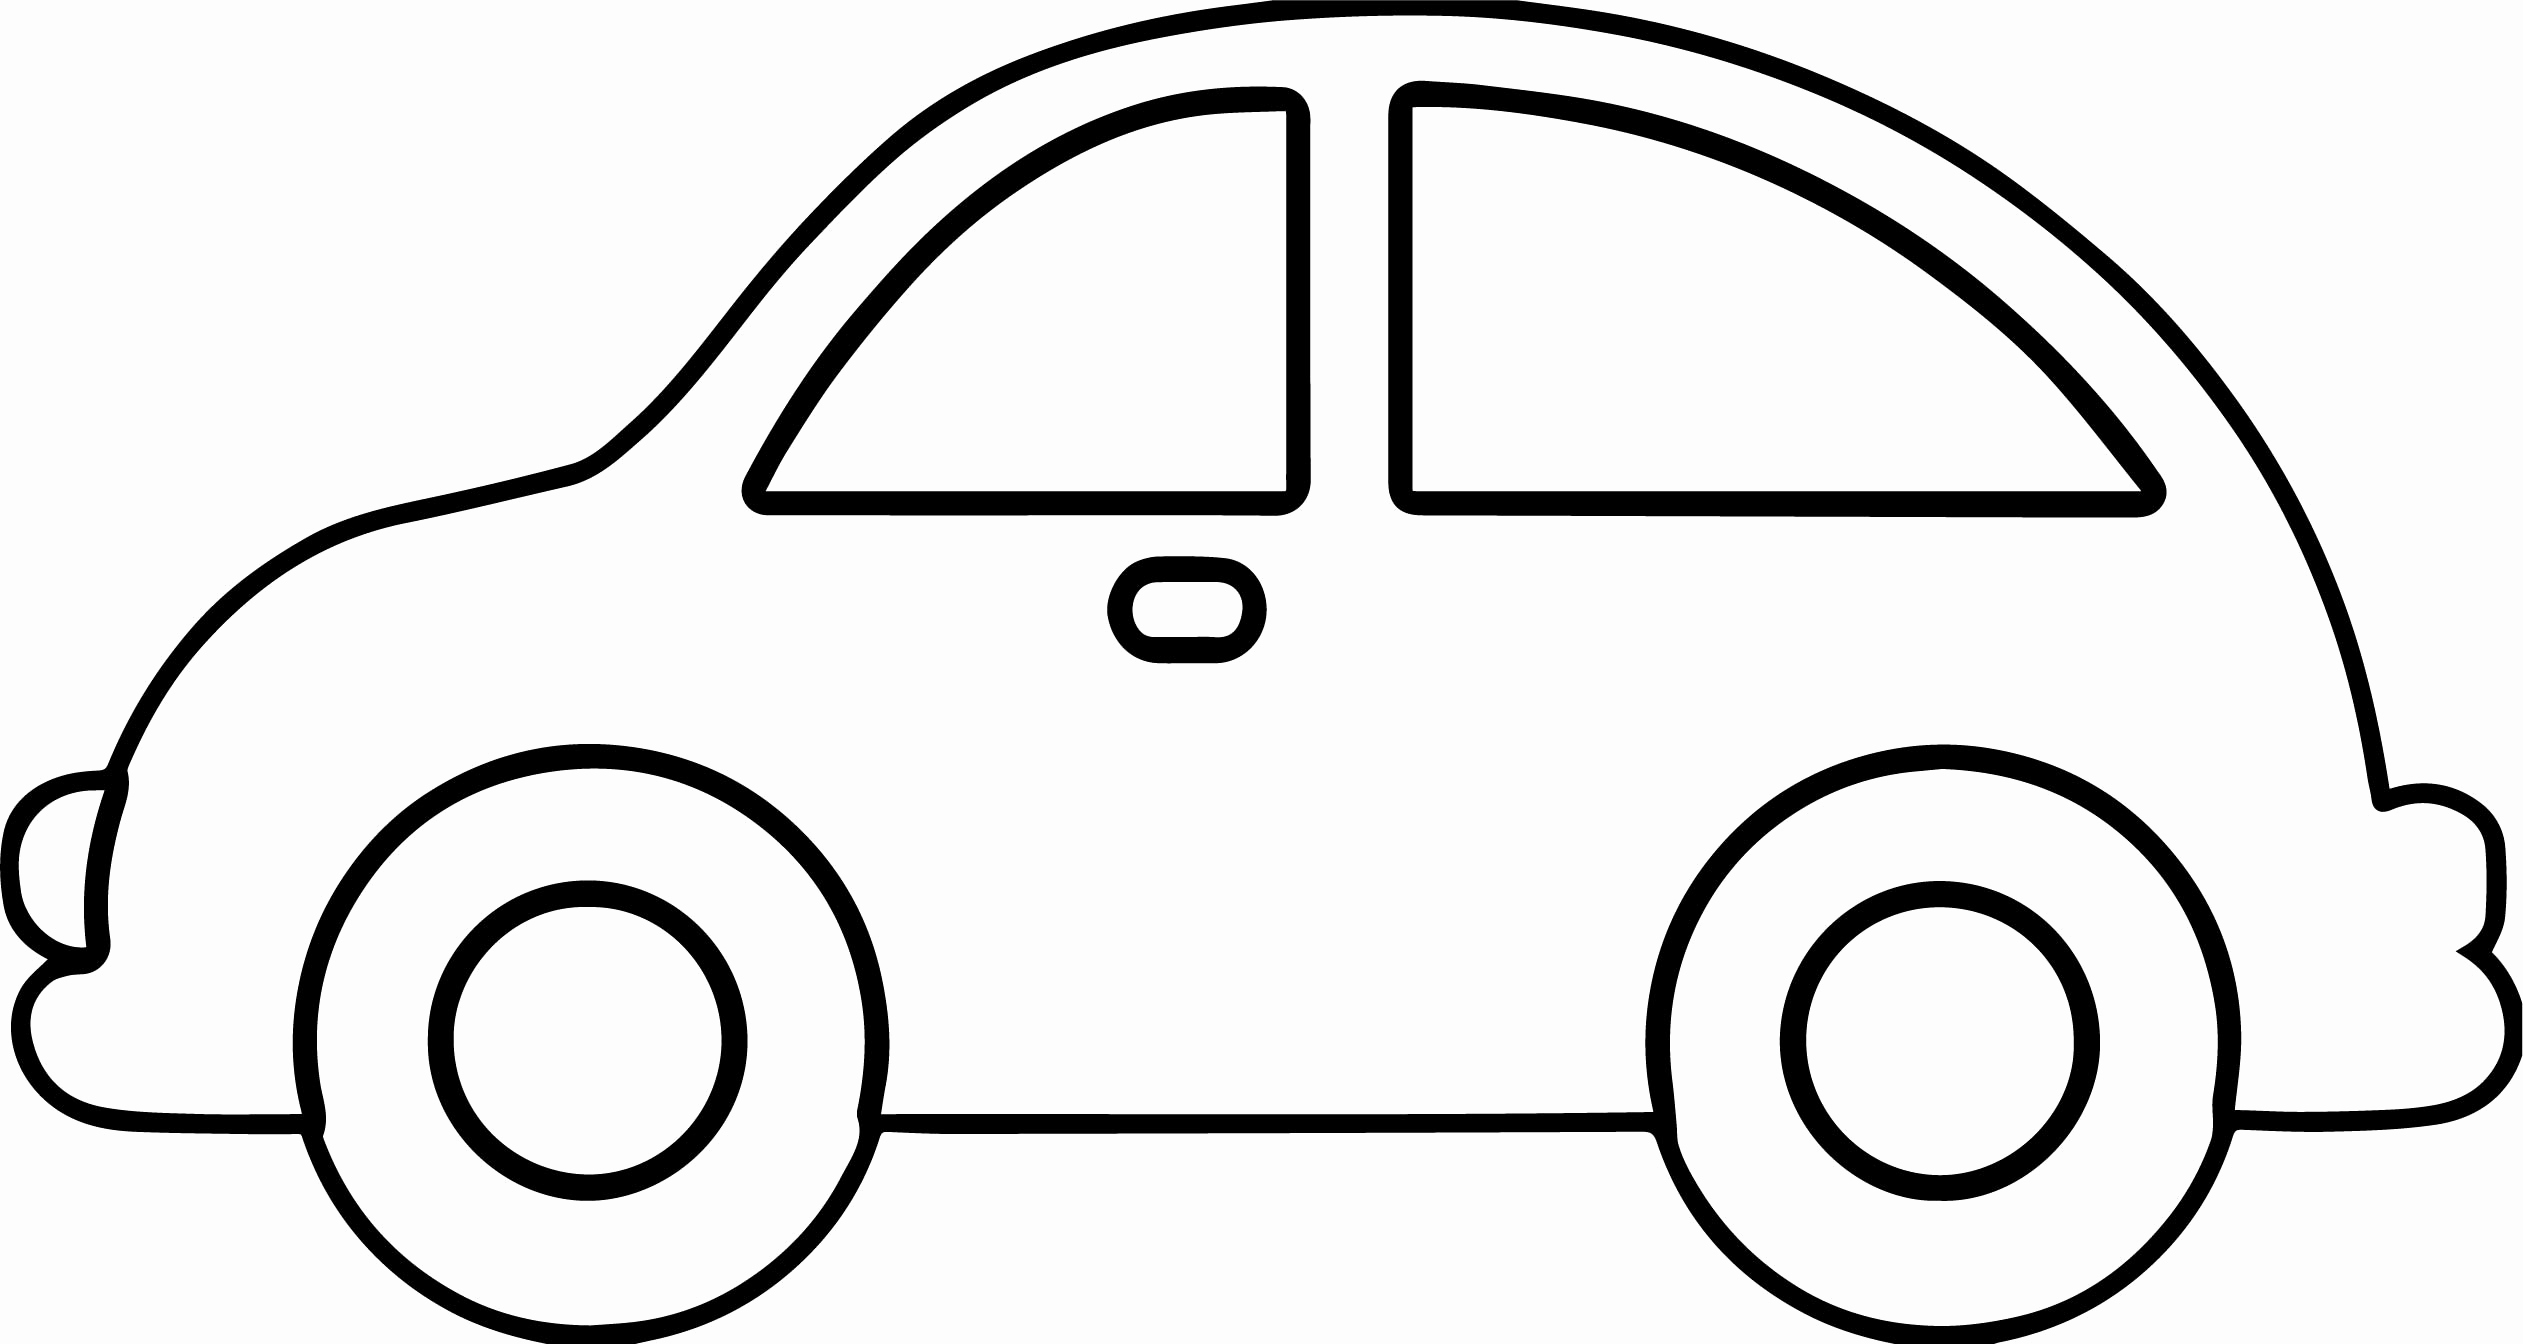 2523x1344 Simple Car Images Awesome Wallpapers Cars In Pencil Sketch Simple